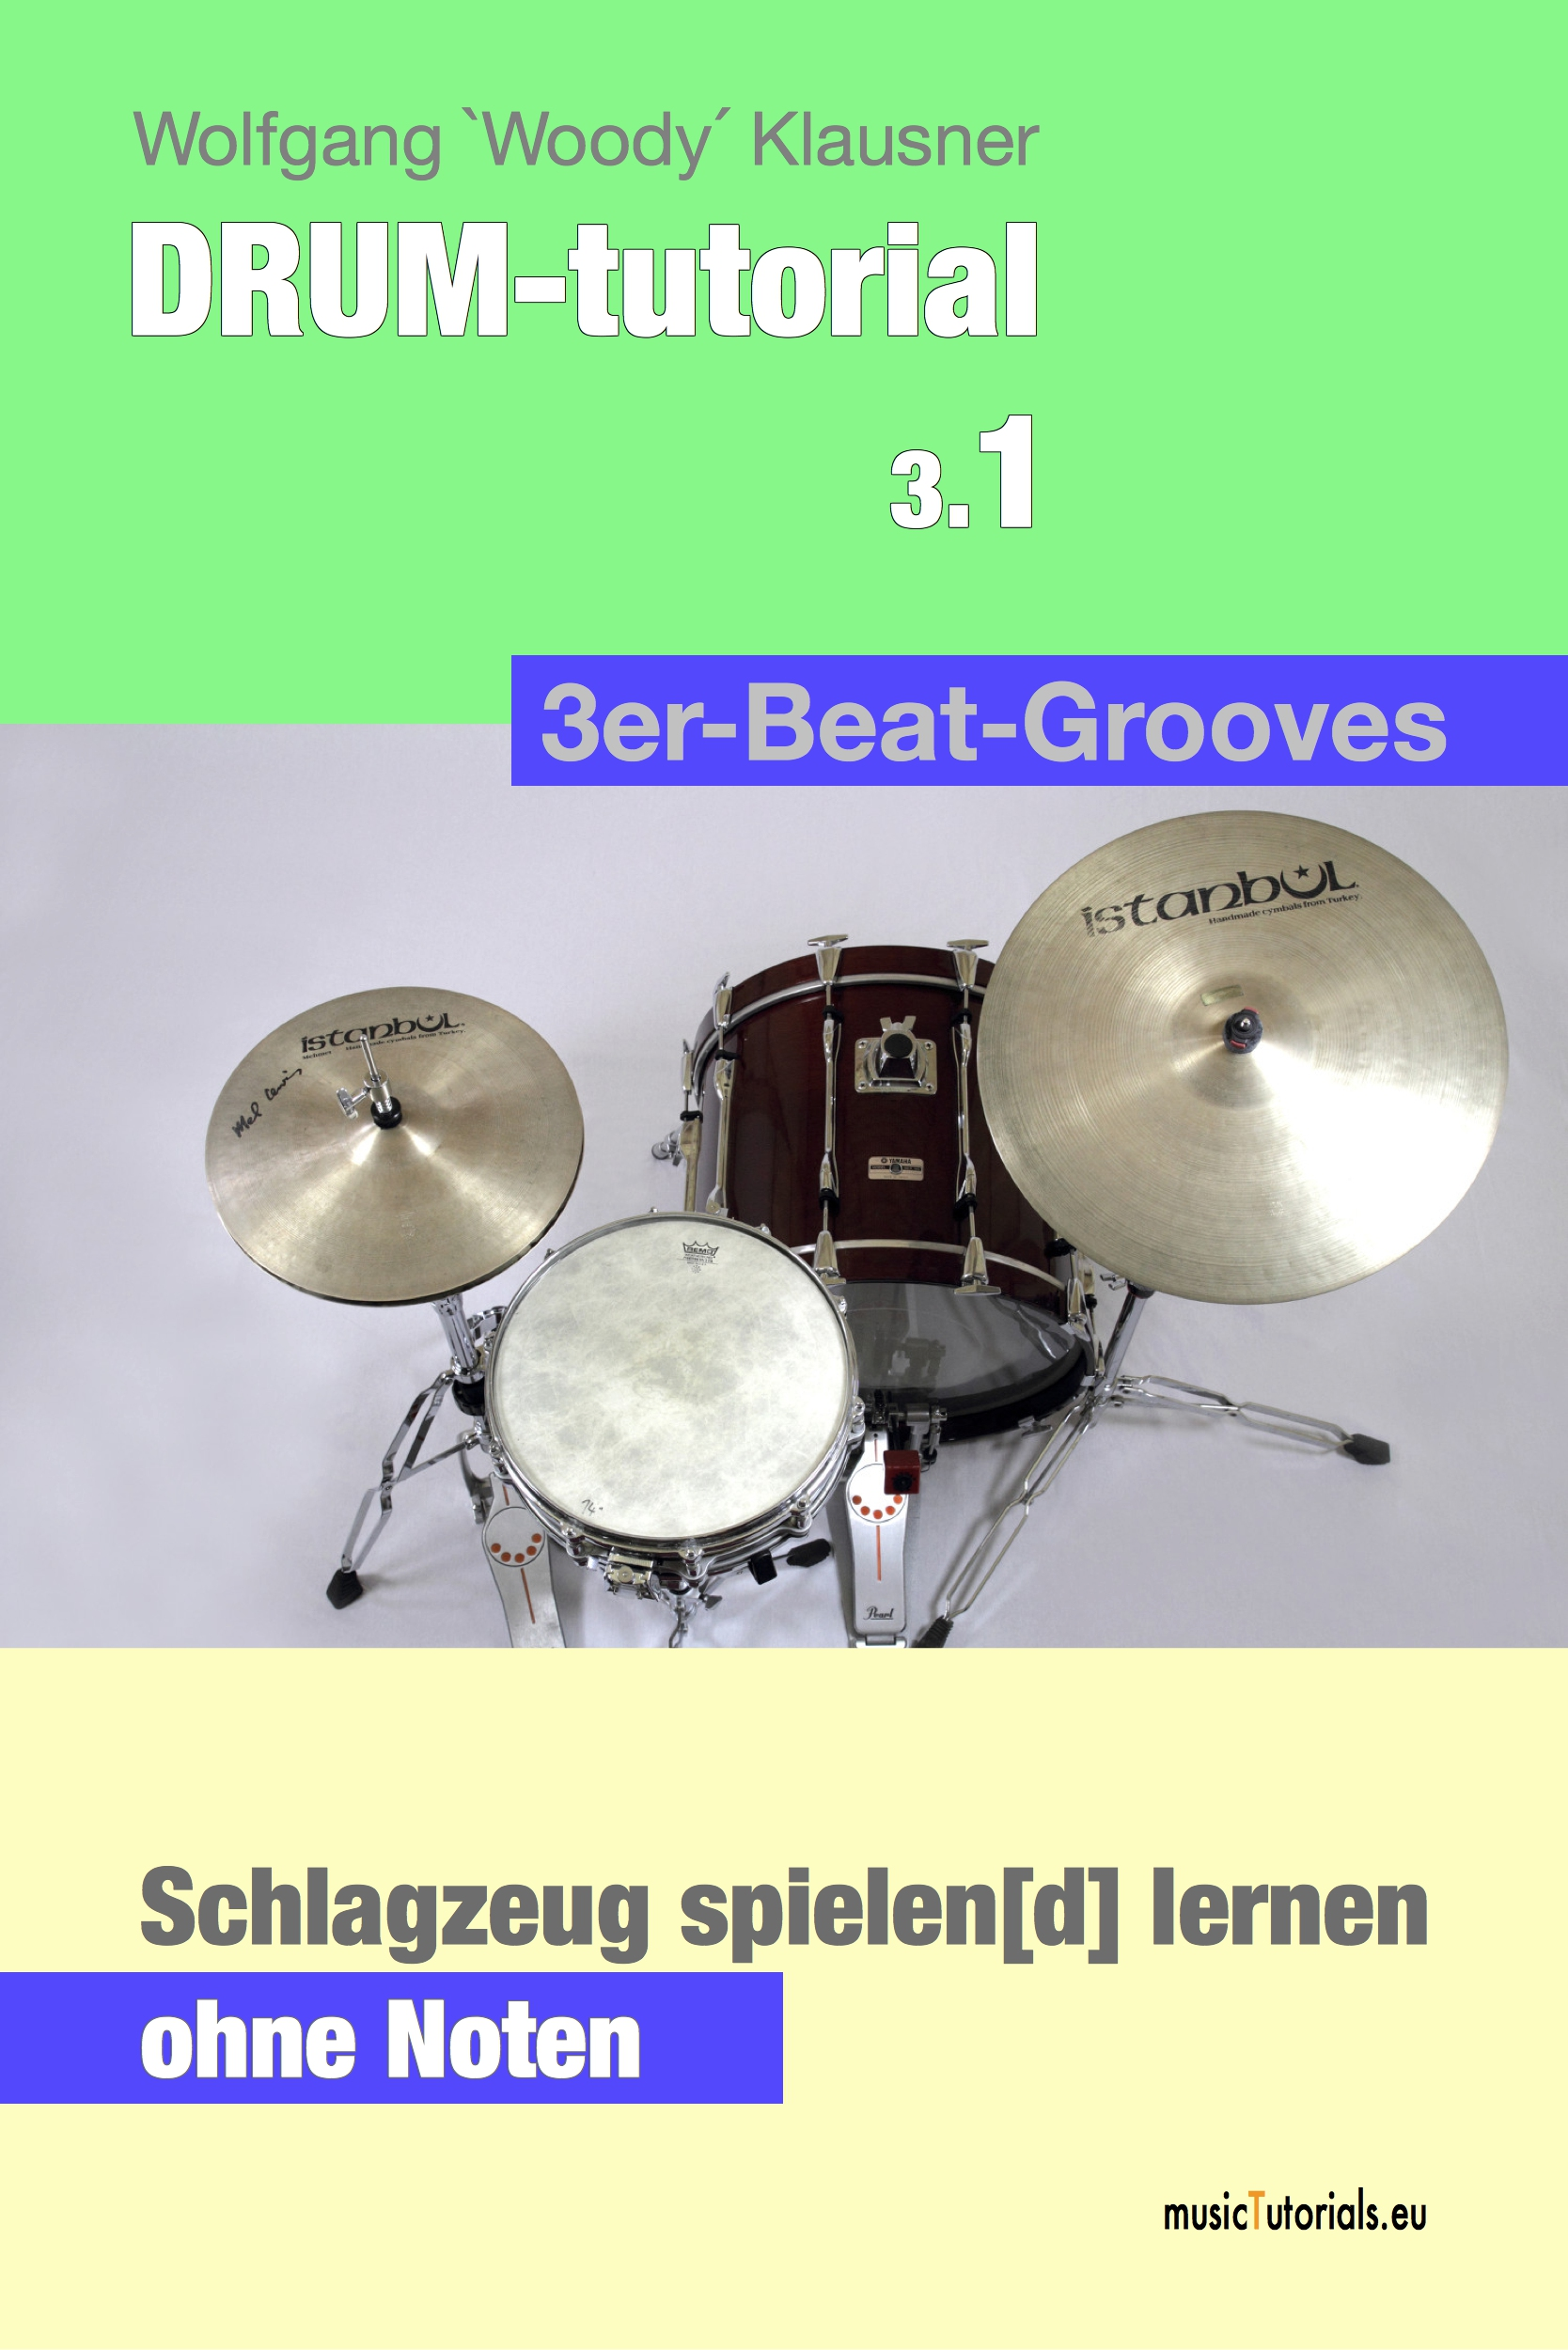 DRUM-kit course 3.1 - 3er-Beat-Grooves